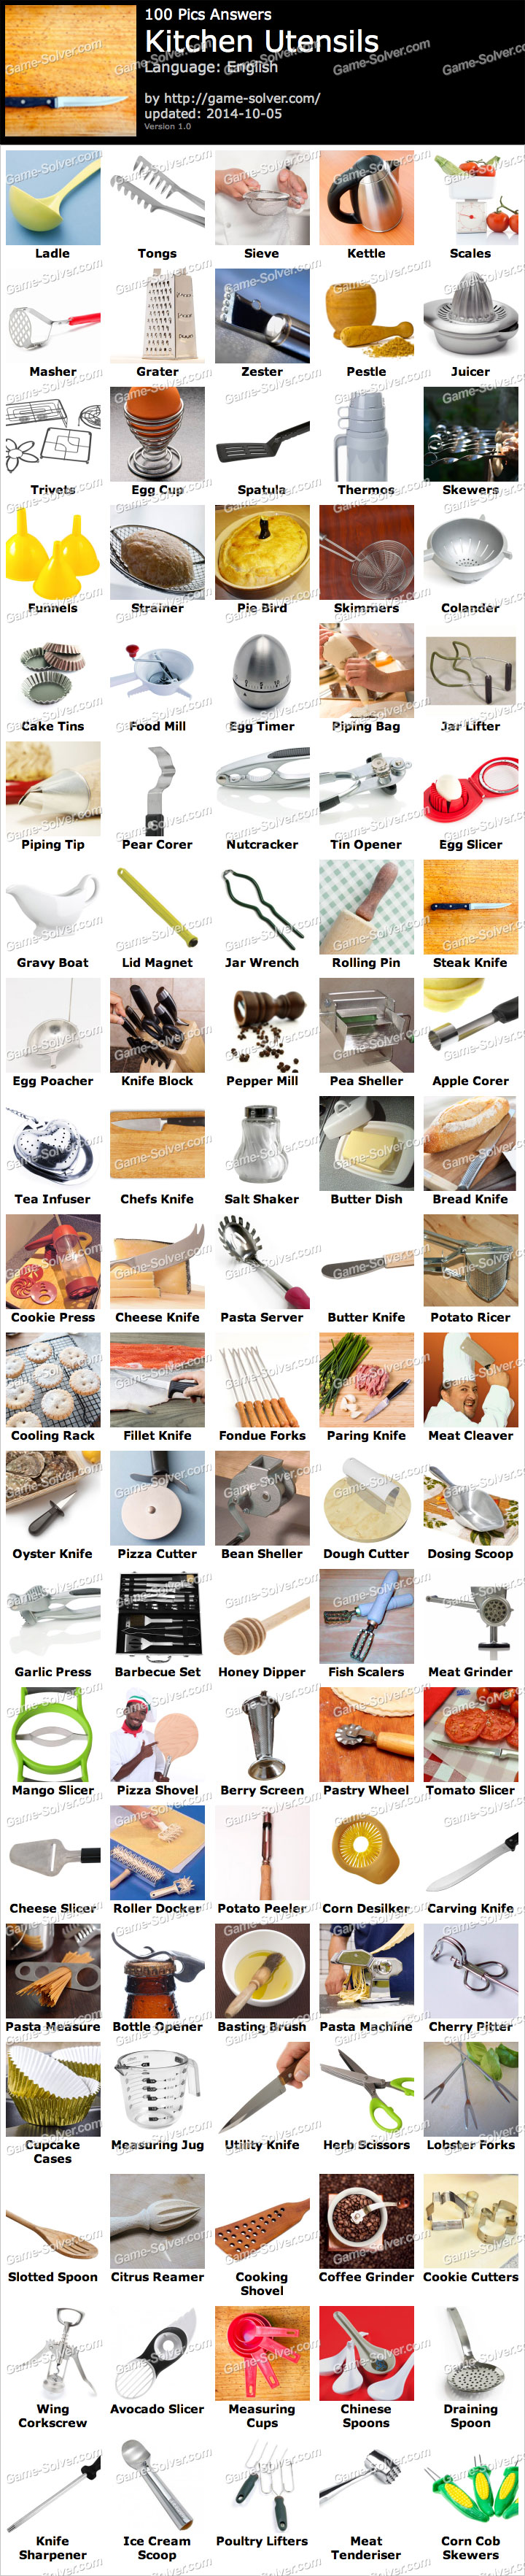 100 Pics Kitchen Utensils